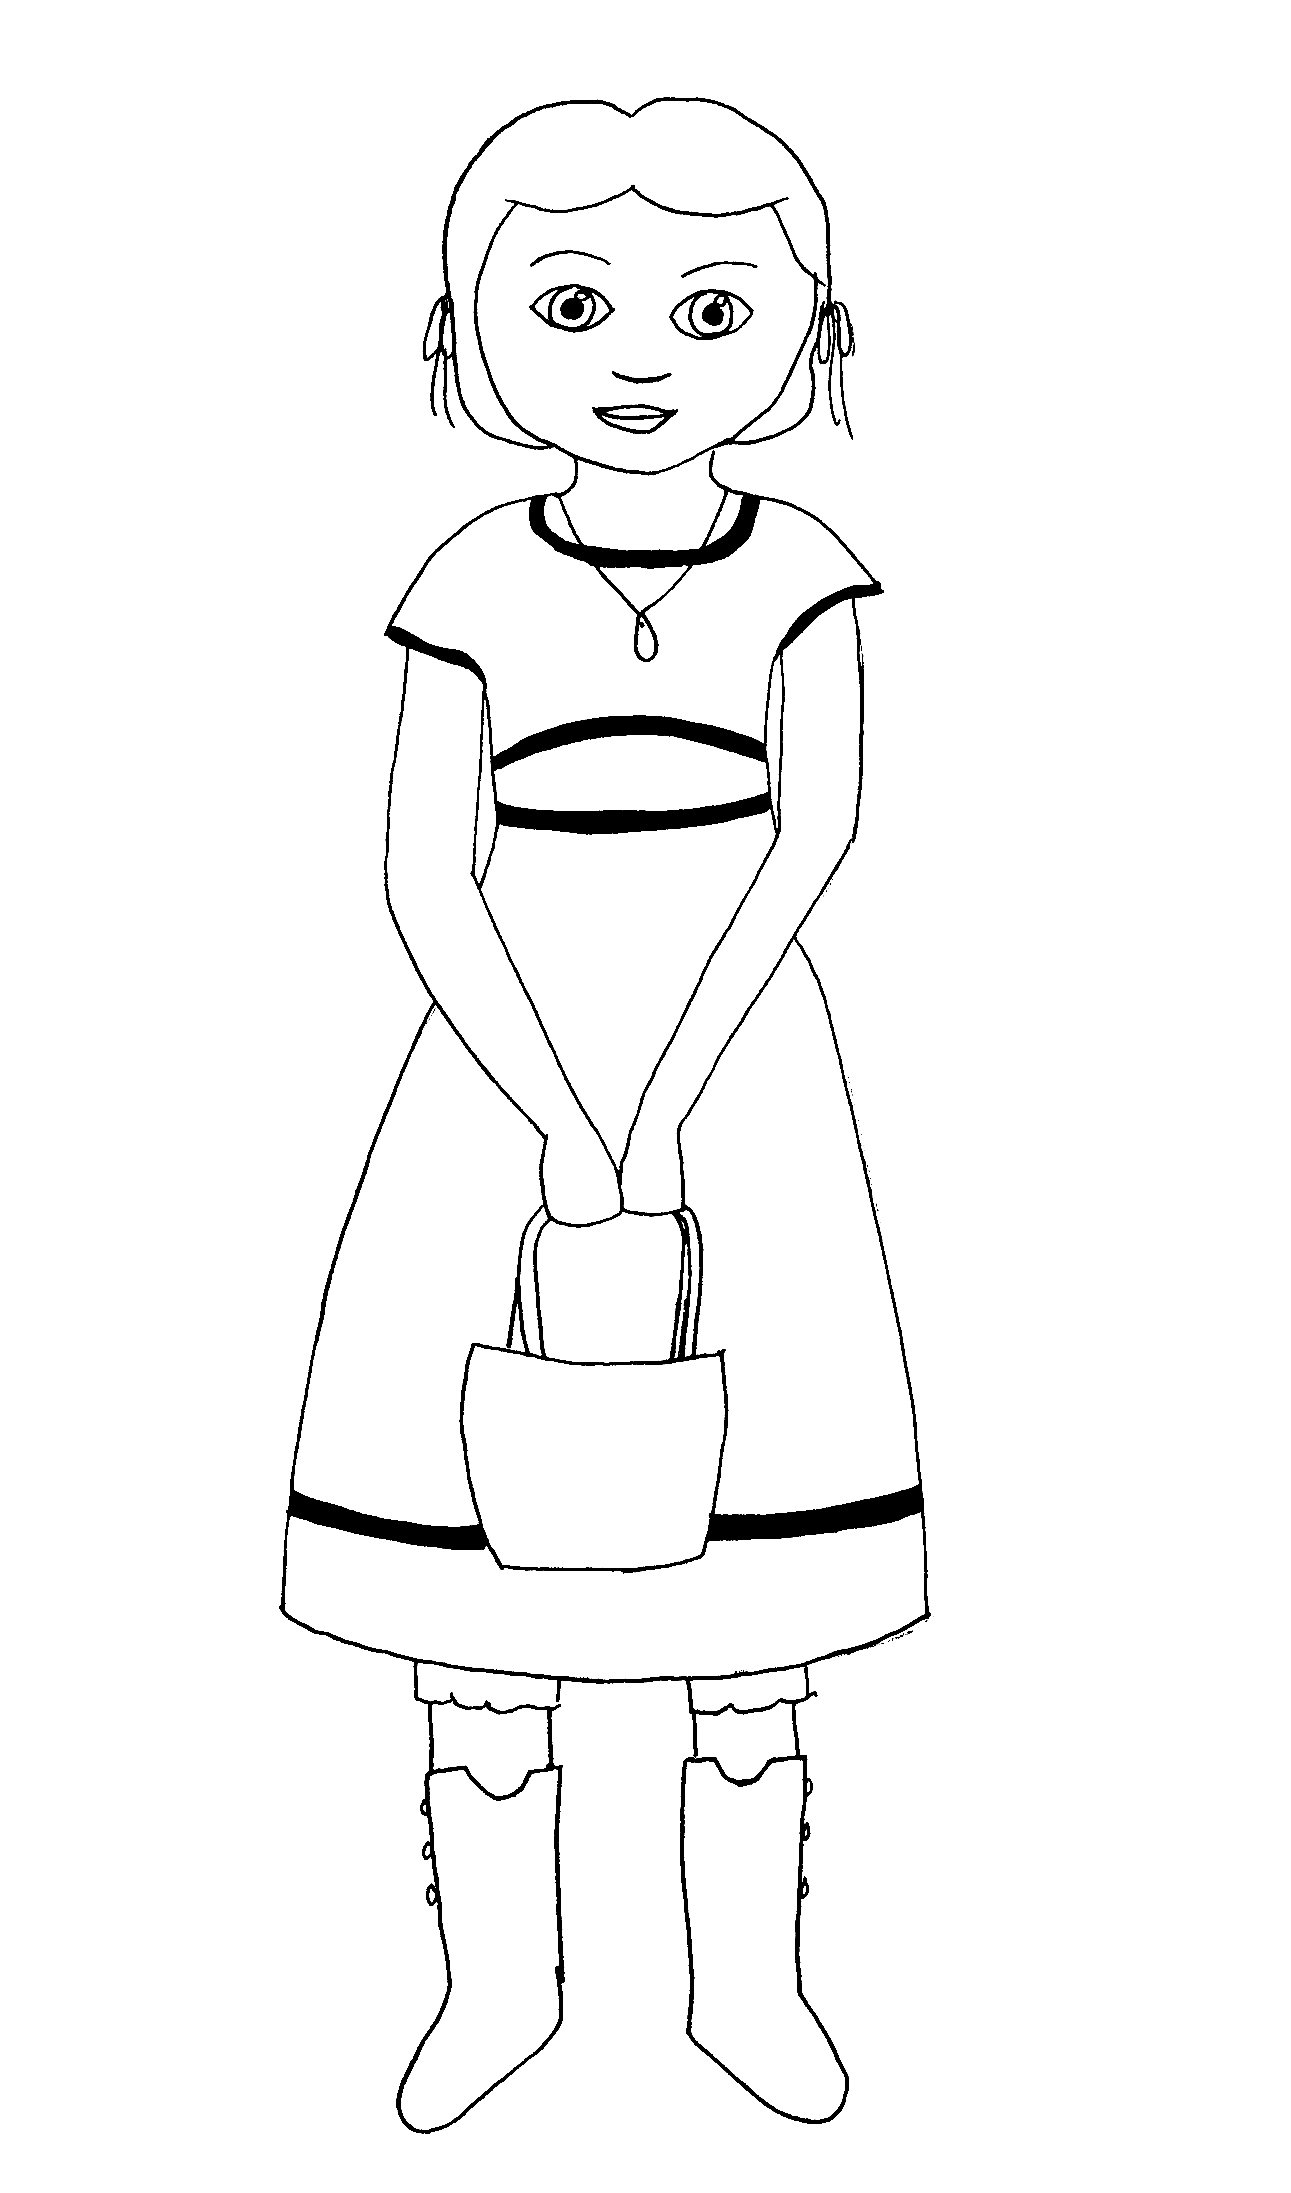 American girl pages to color - American Girl Coloring Pages Beforever